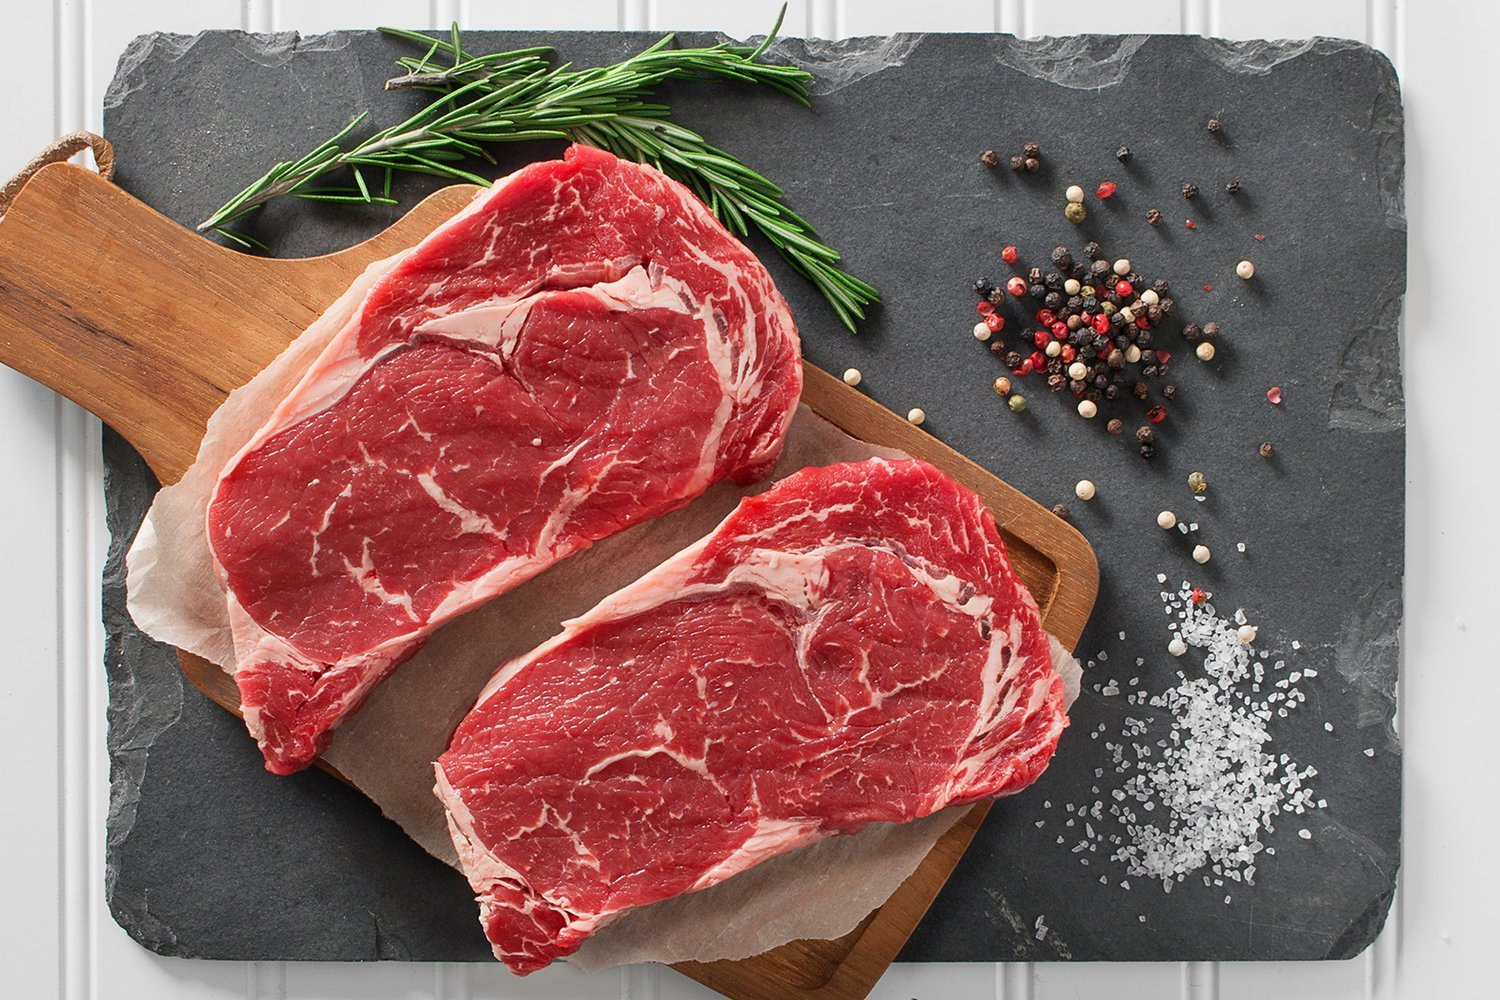 Greensbury Market - 6 (8 ounce) USDA Certified Organic Grass-Fed Ribeye Steaks - Born and Raised in the USA